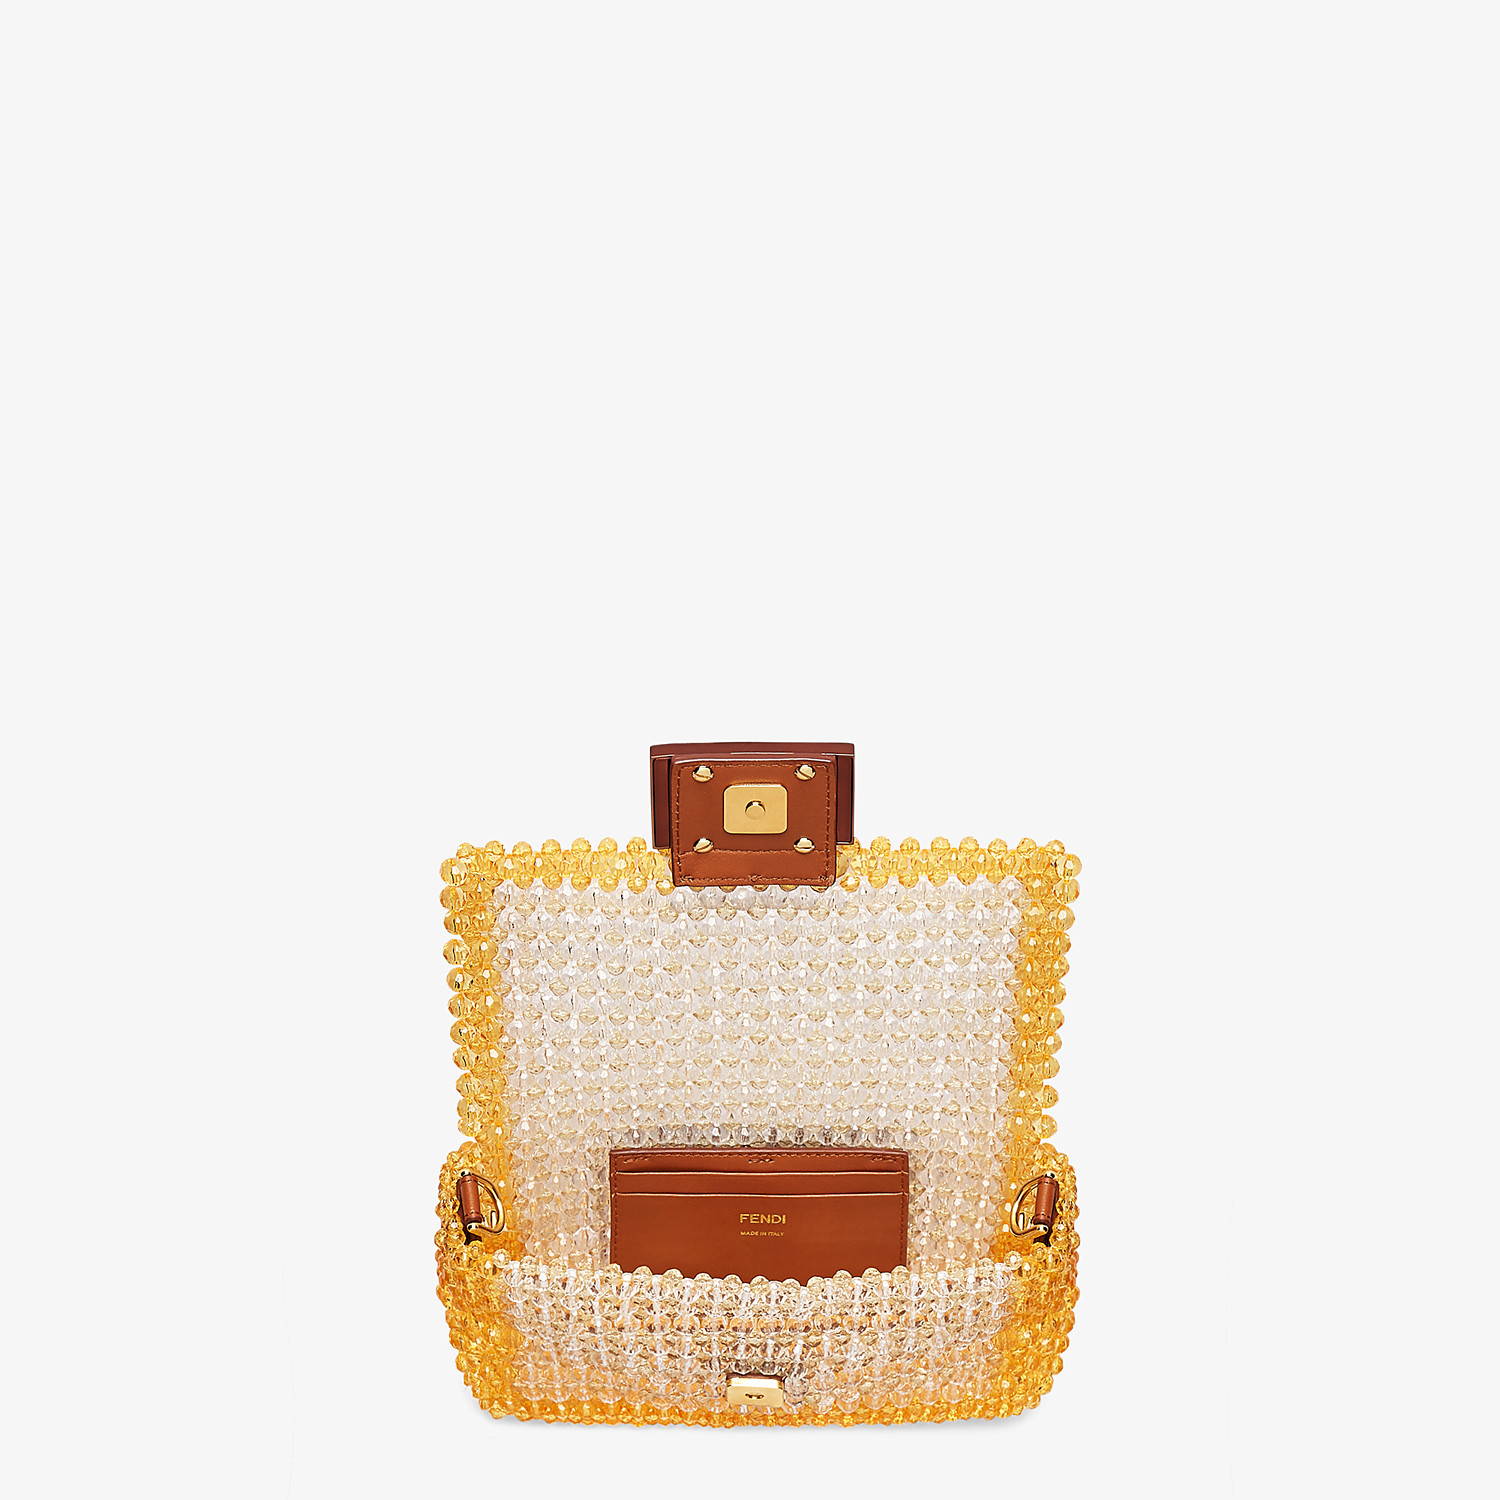 FENDI BAGUETTE - Bag with yellow beads - view 4 detail